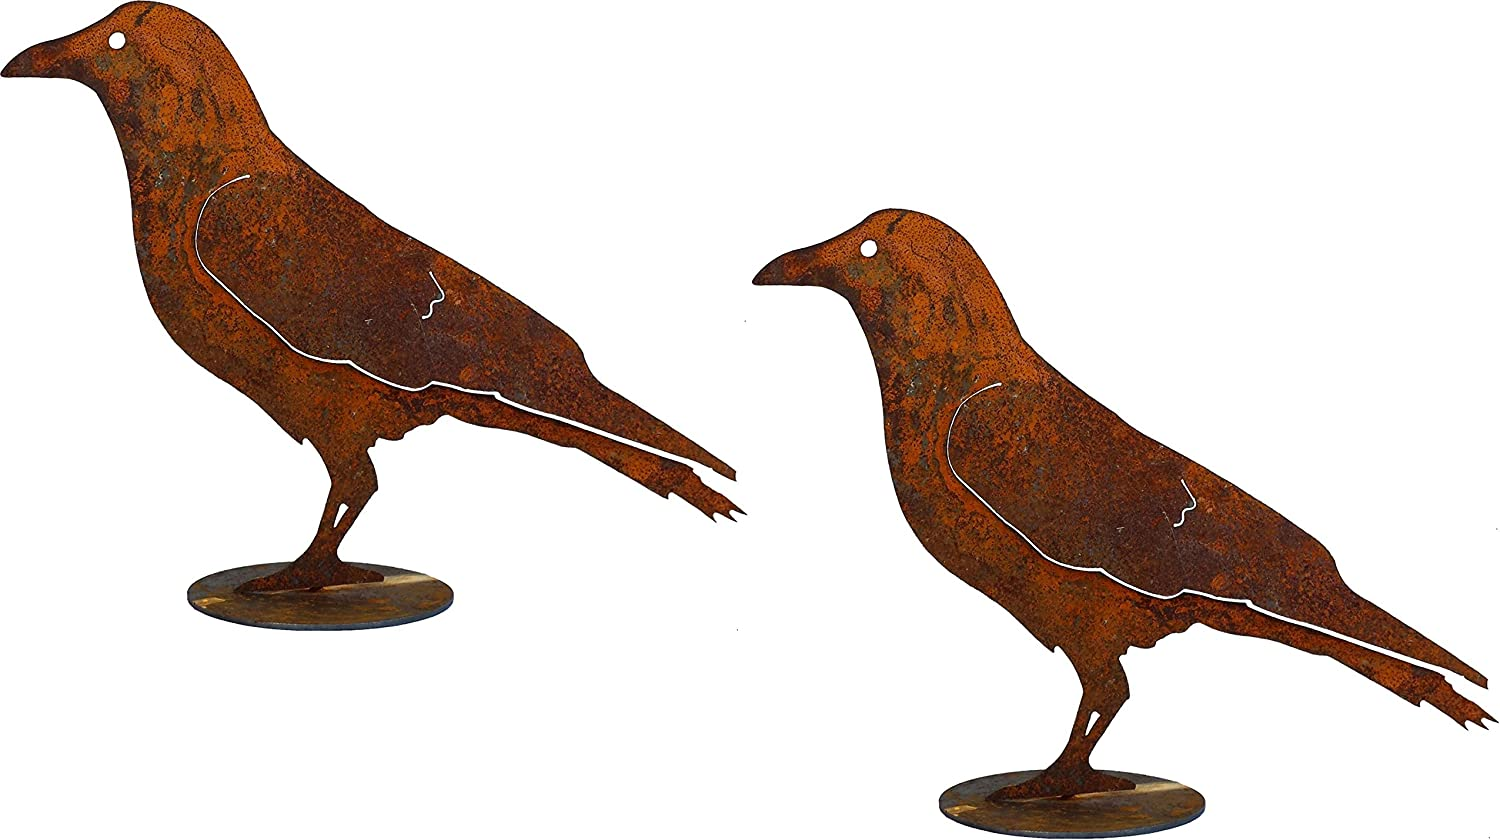 California Home and Garden CH805-2 Set of 2 Metal Crow Silhouettes on Base 10 Inch Tall, Rustic Look Artwork